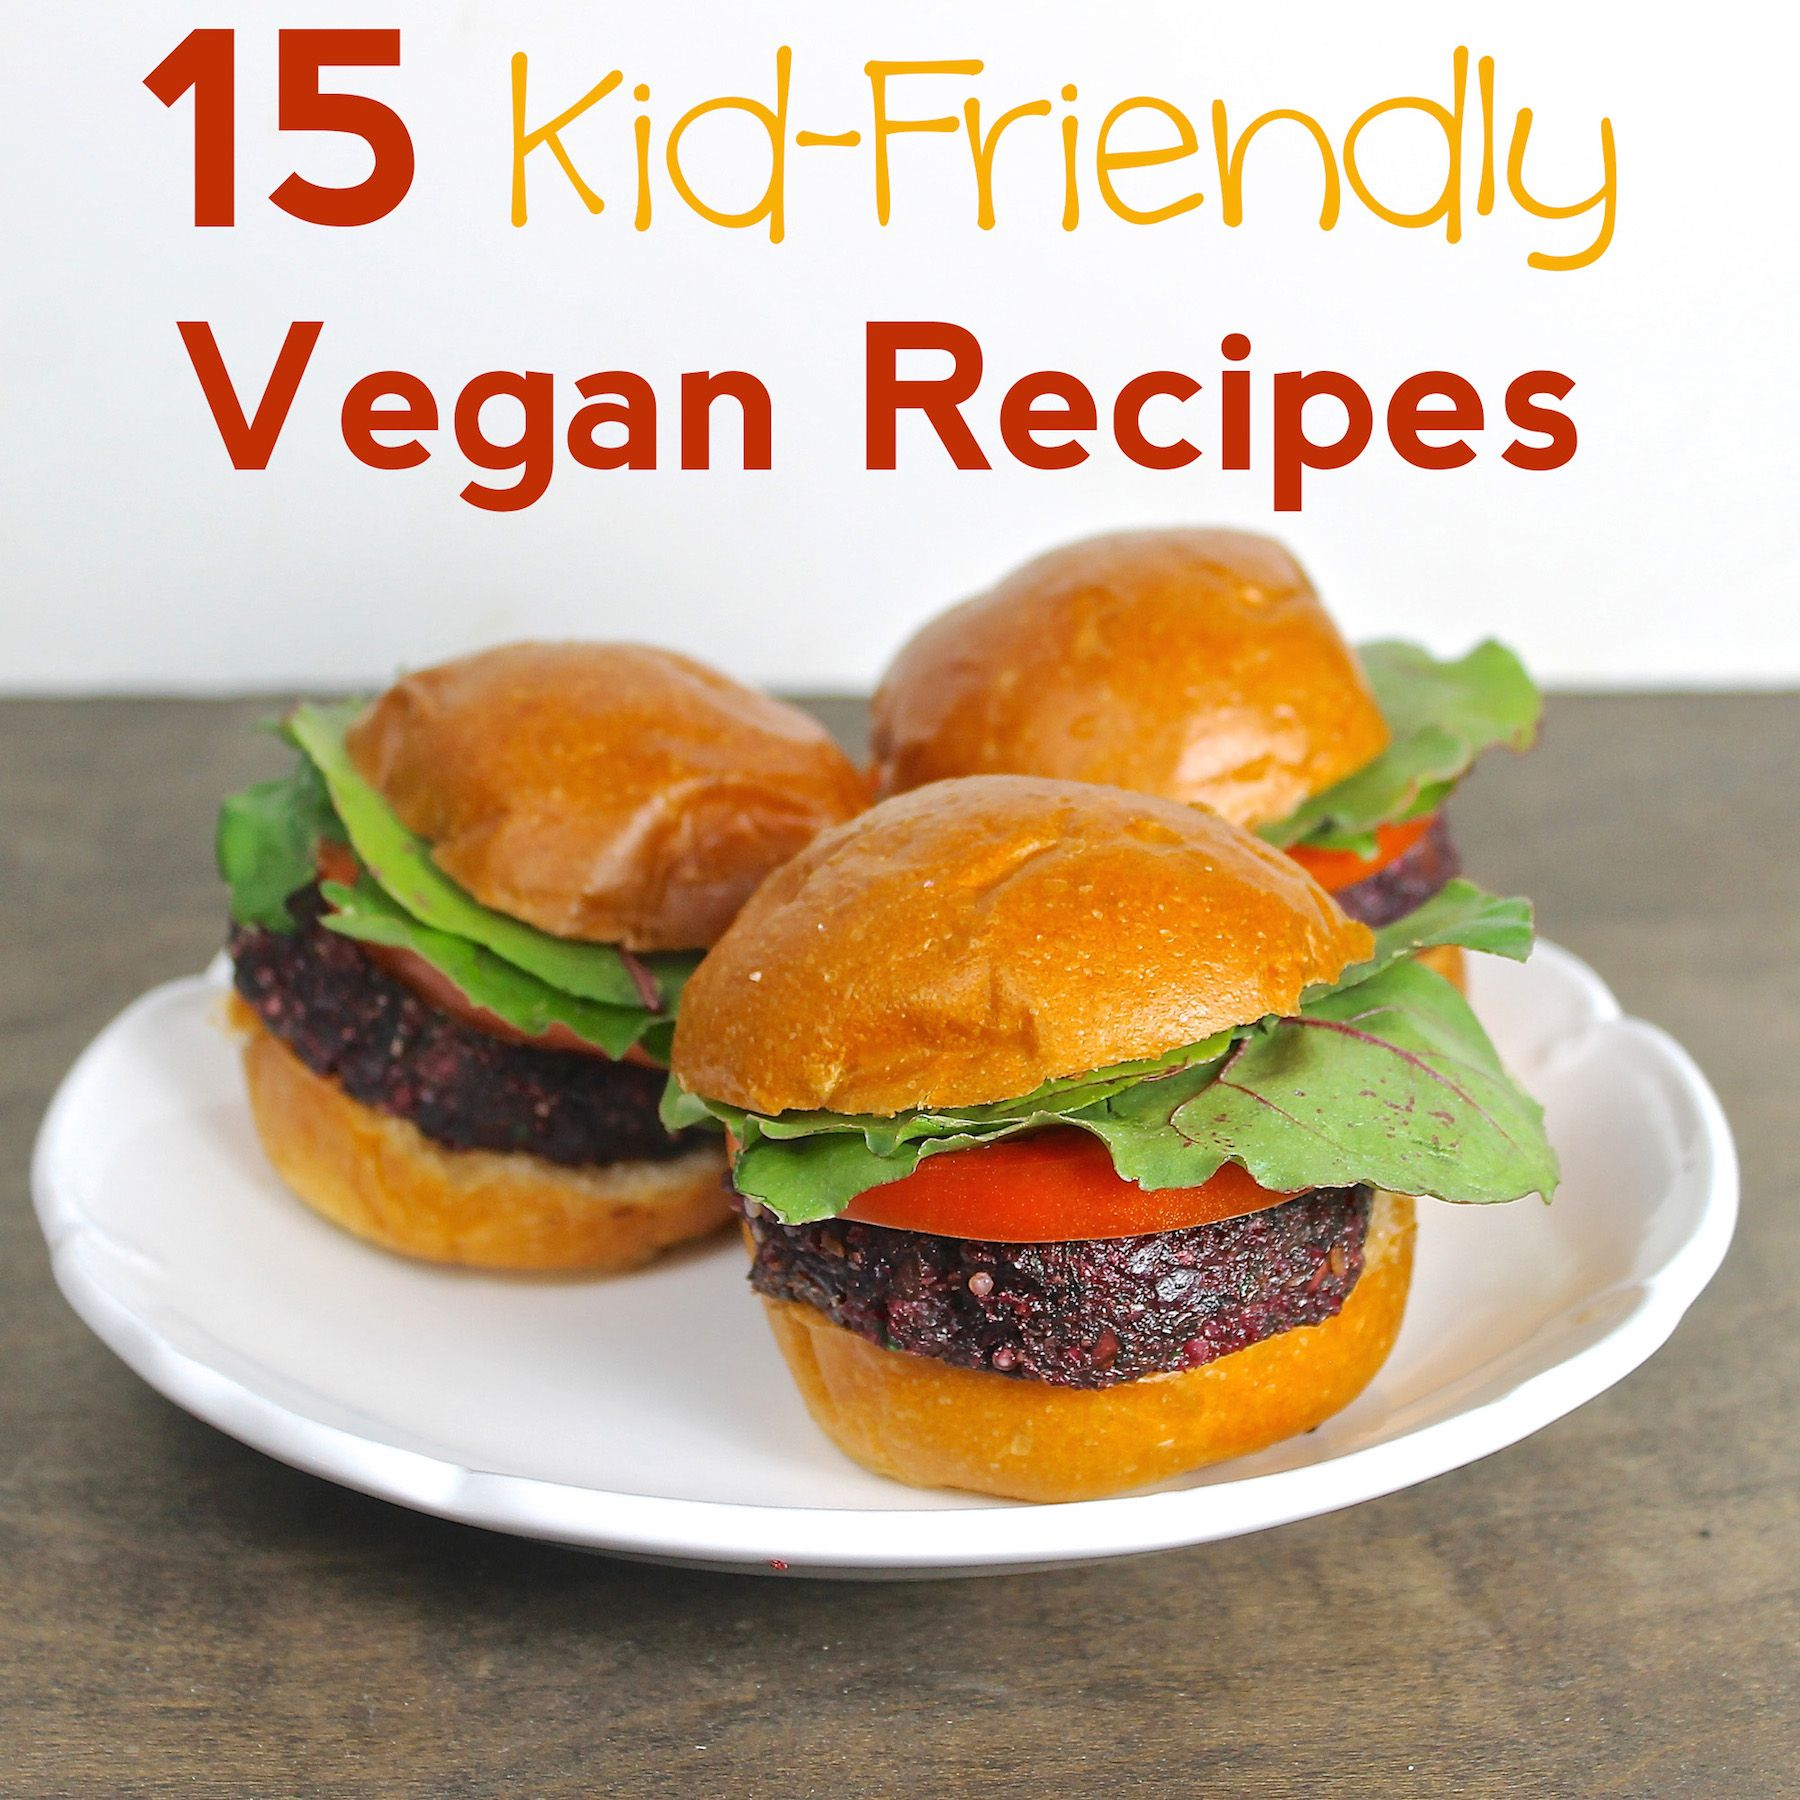 Vegan kid-friendly recipes loved by readers' children, including many gluten-free and low-carb options.